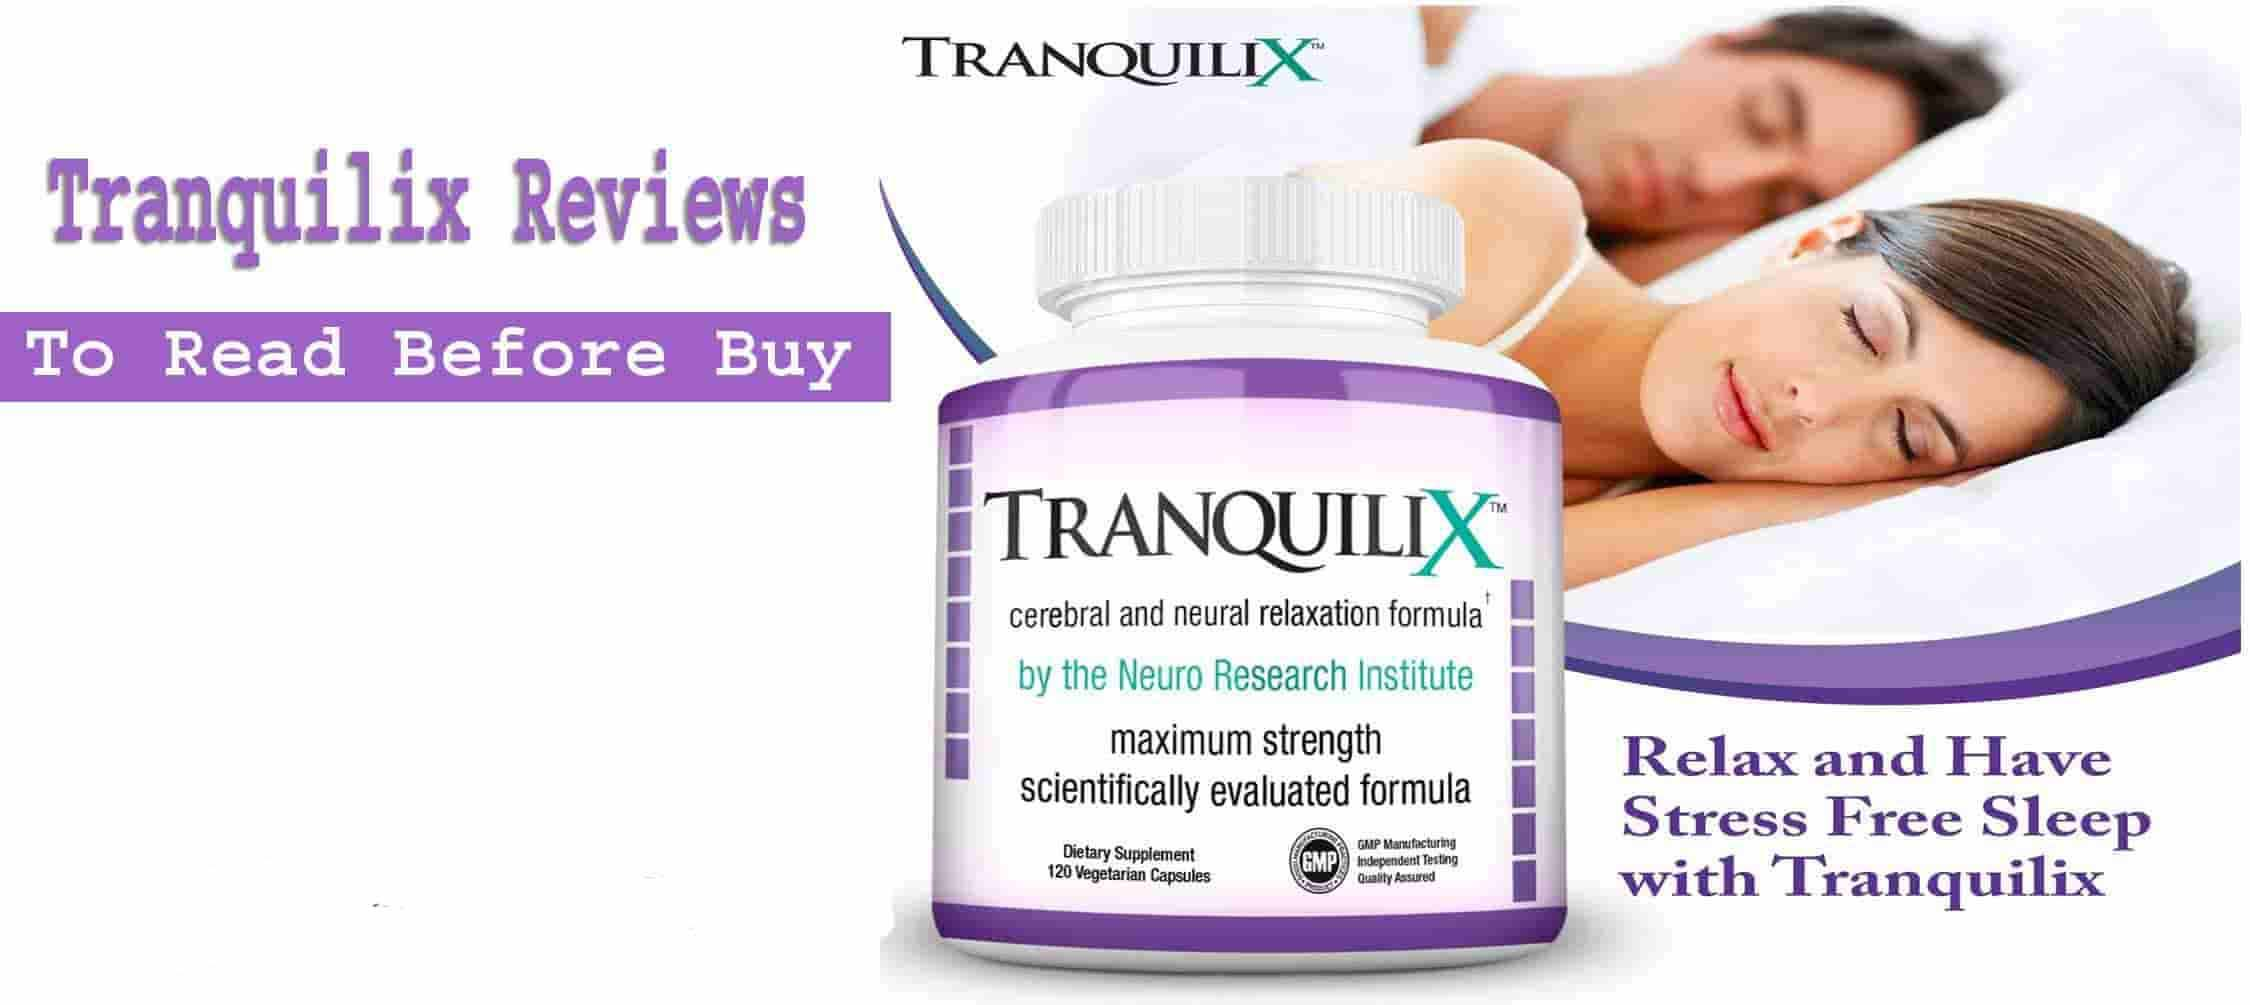 Tranquilix Reviews